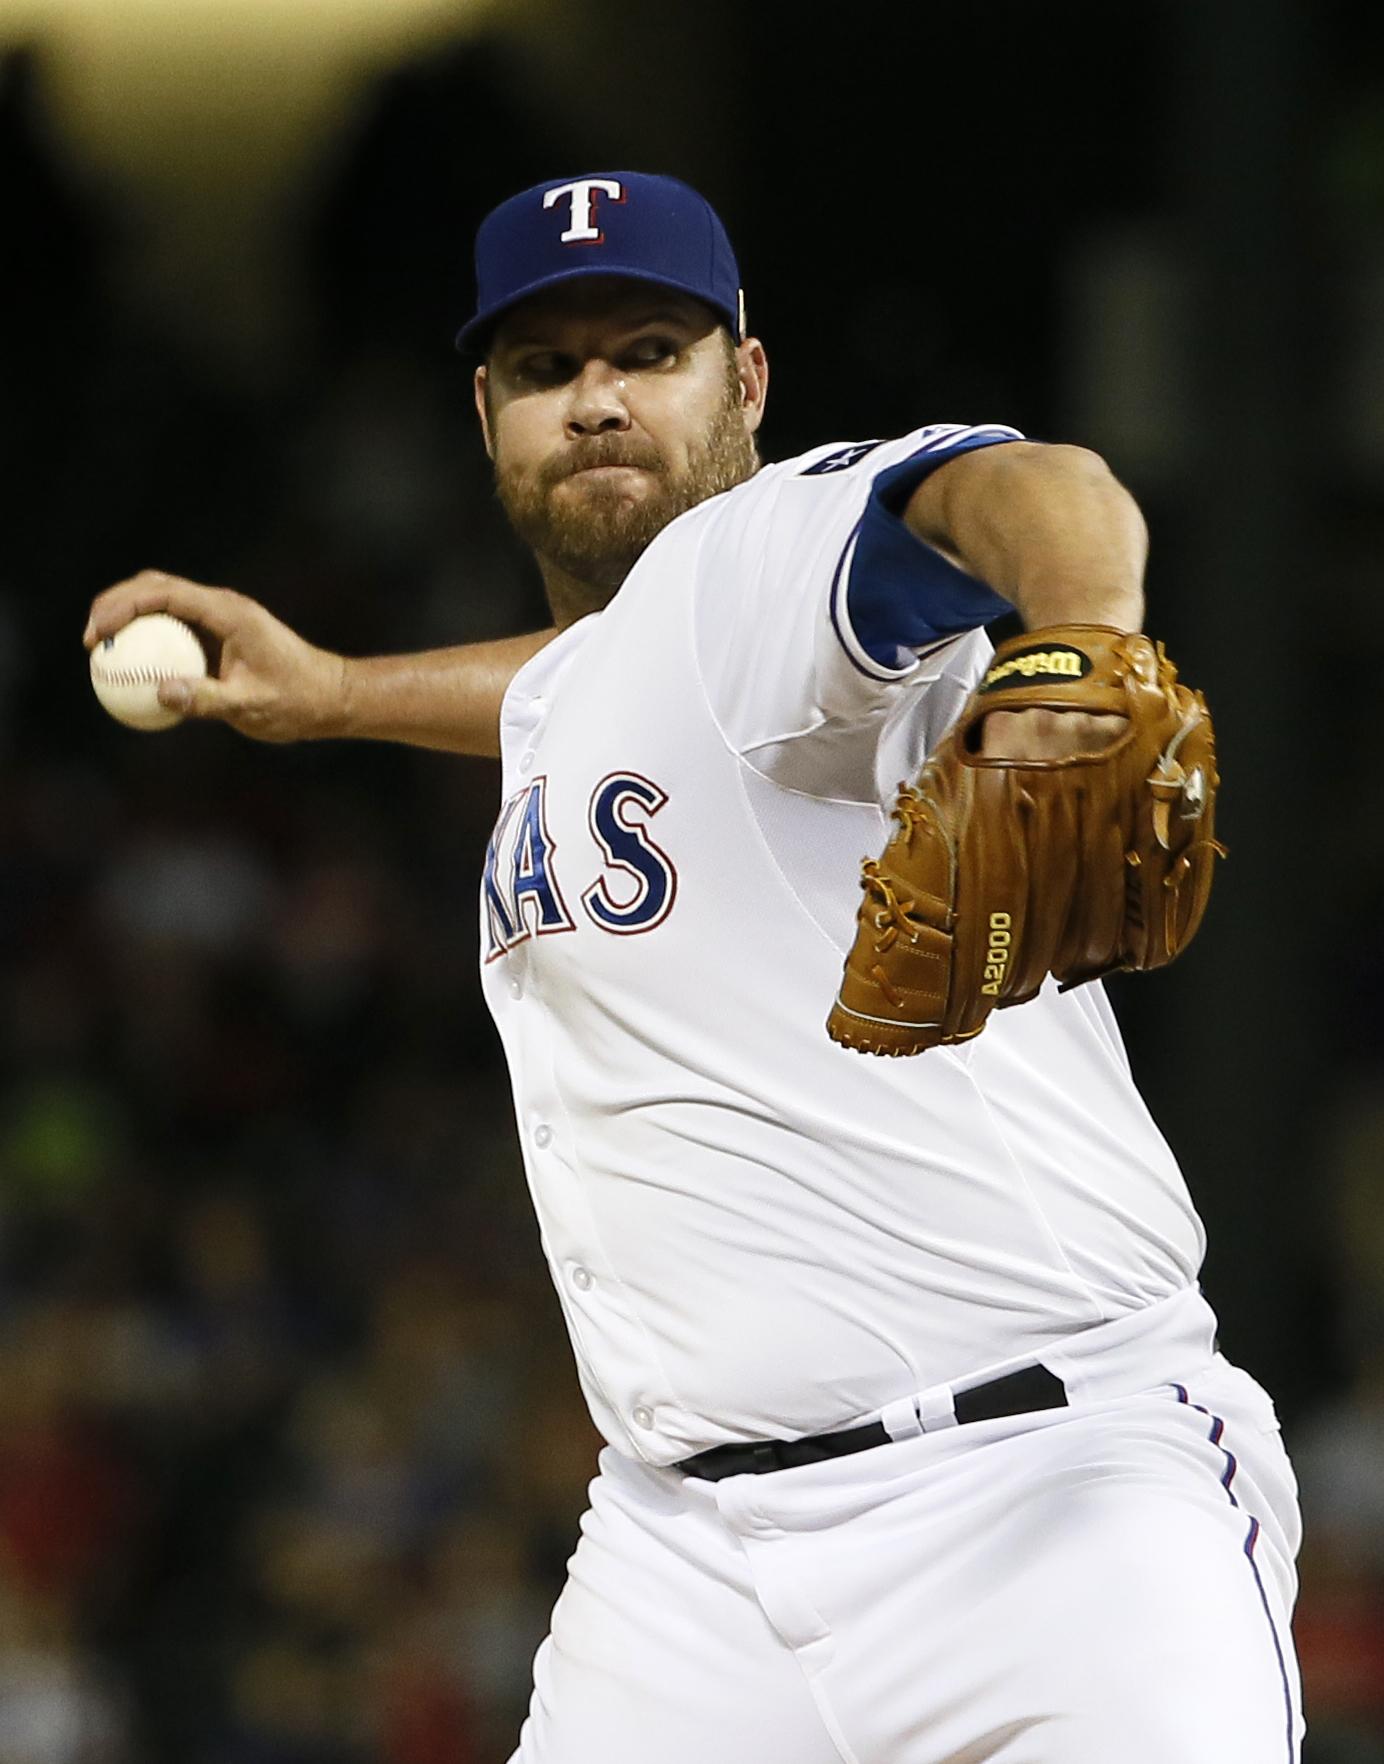 Texas Rangers starting pitcher Colby Lewis works against the Oakland Athletics during the seventh inning of a baseball game Friday, Sept. 11, 2015, in Arlington, Texas. (AP Photo/Tony Gutierrez)